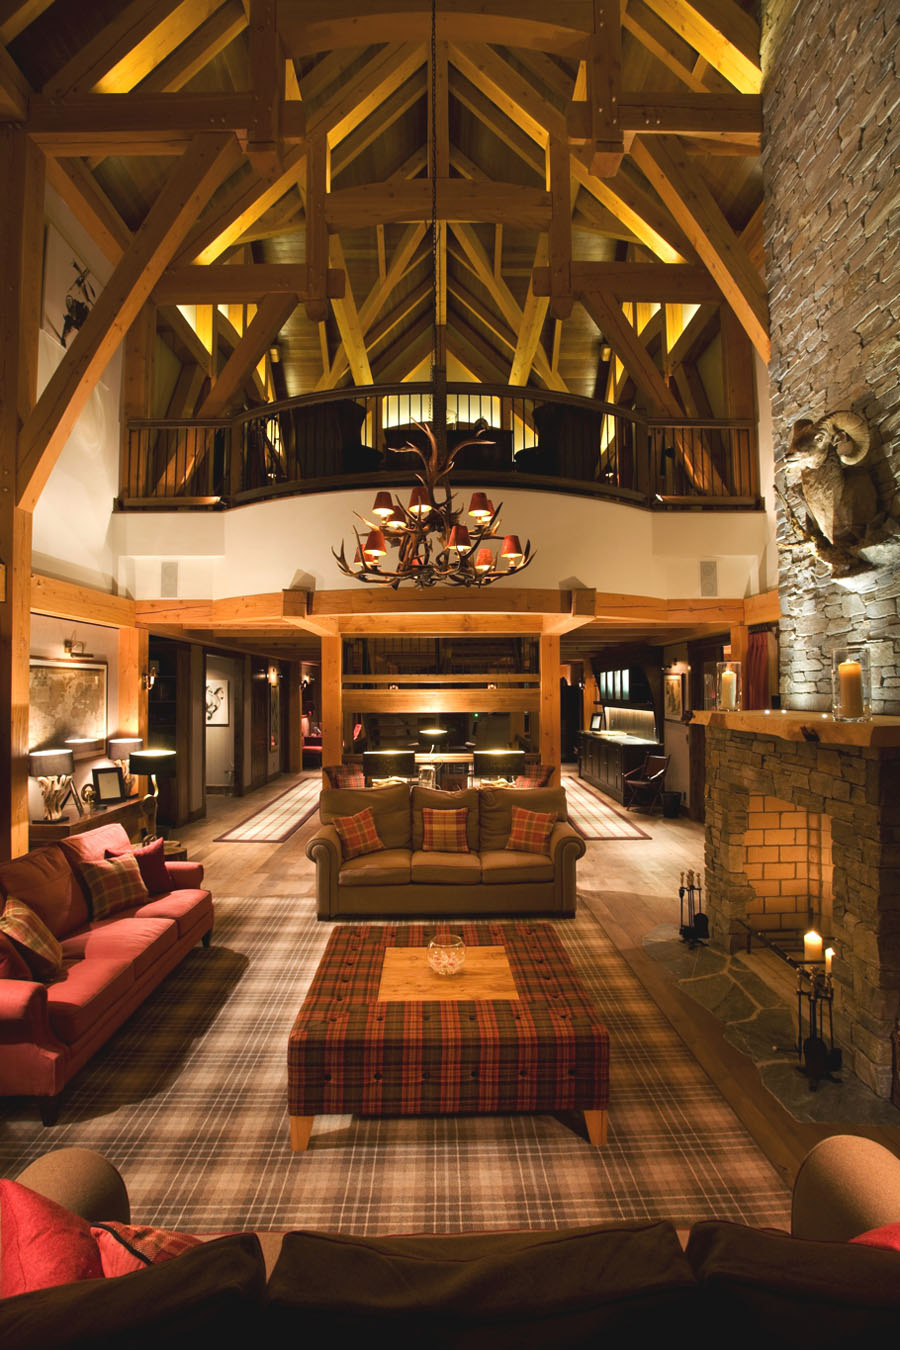 Bighorn Lodge Revelstoke Mountain Resort & Bighorn Lodge Revelstoke Mountain Resort | iDesignArch | Interior ...